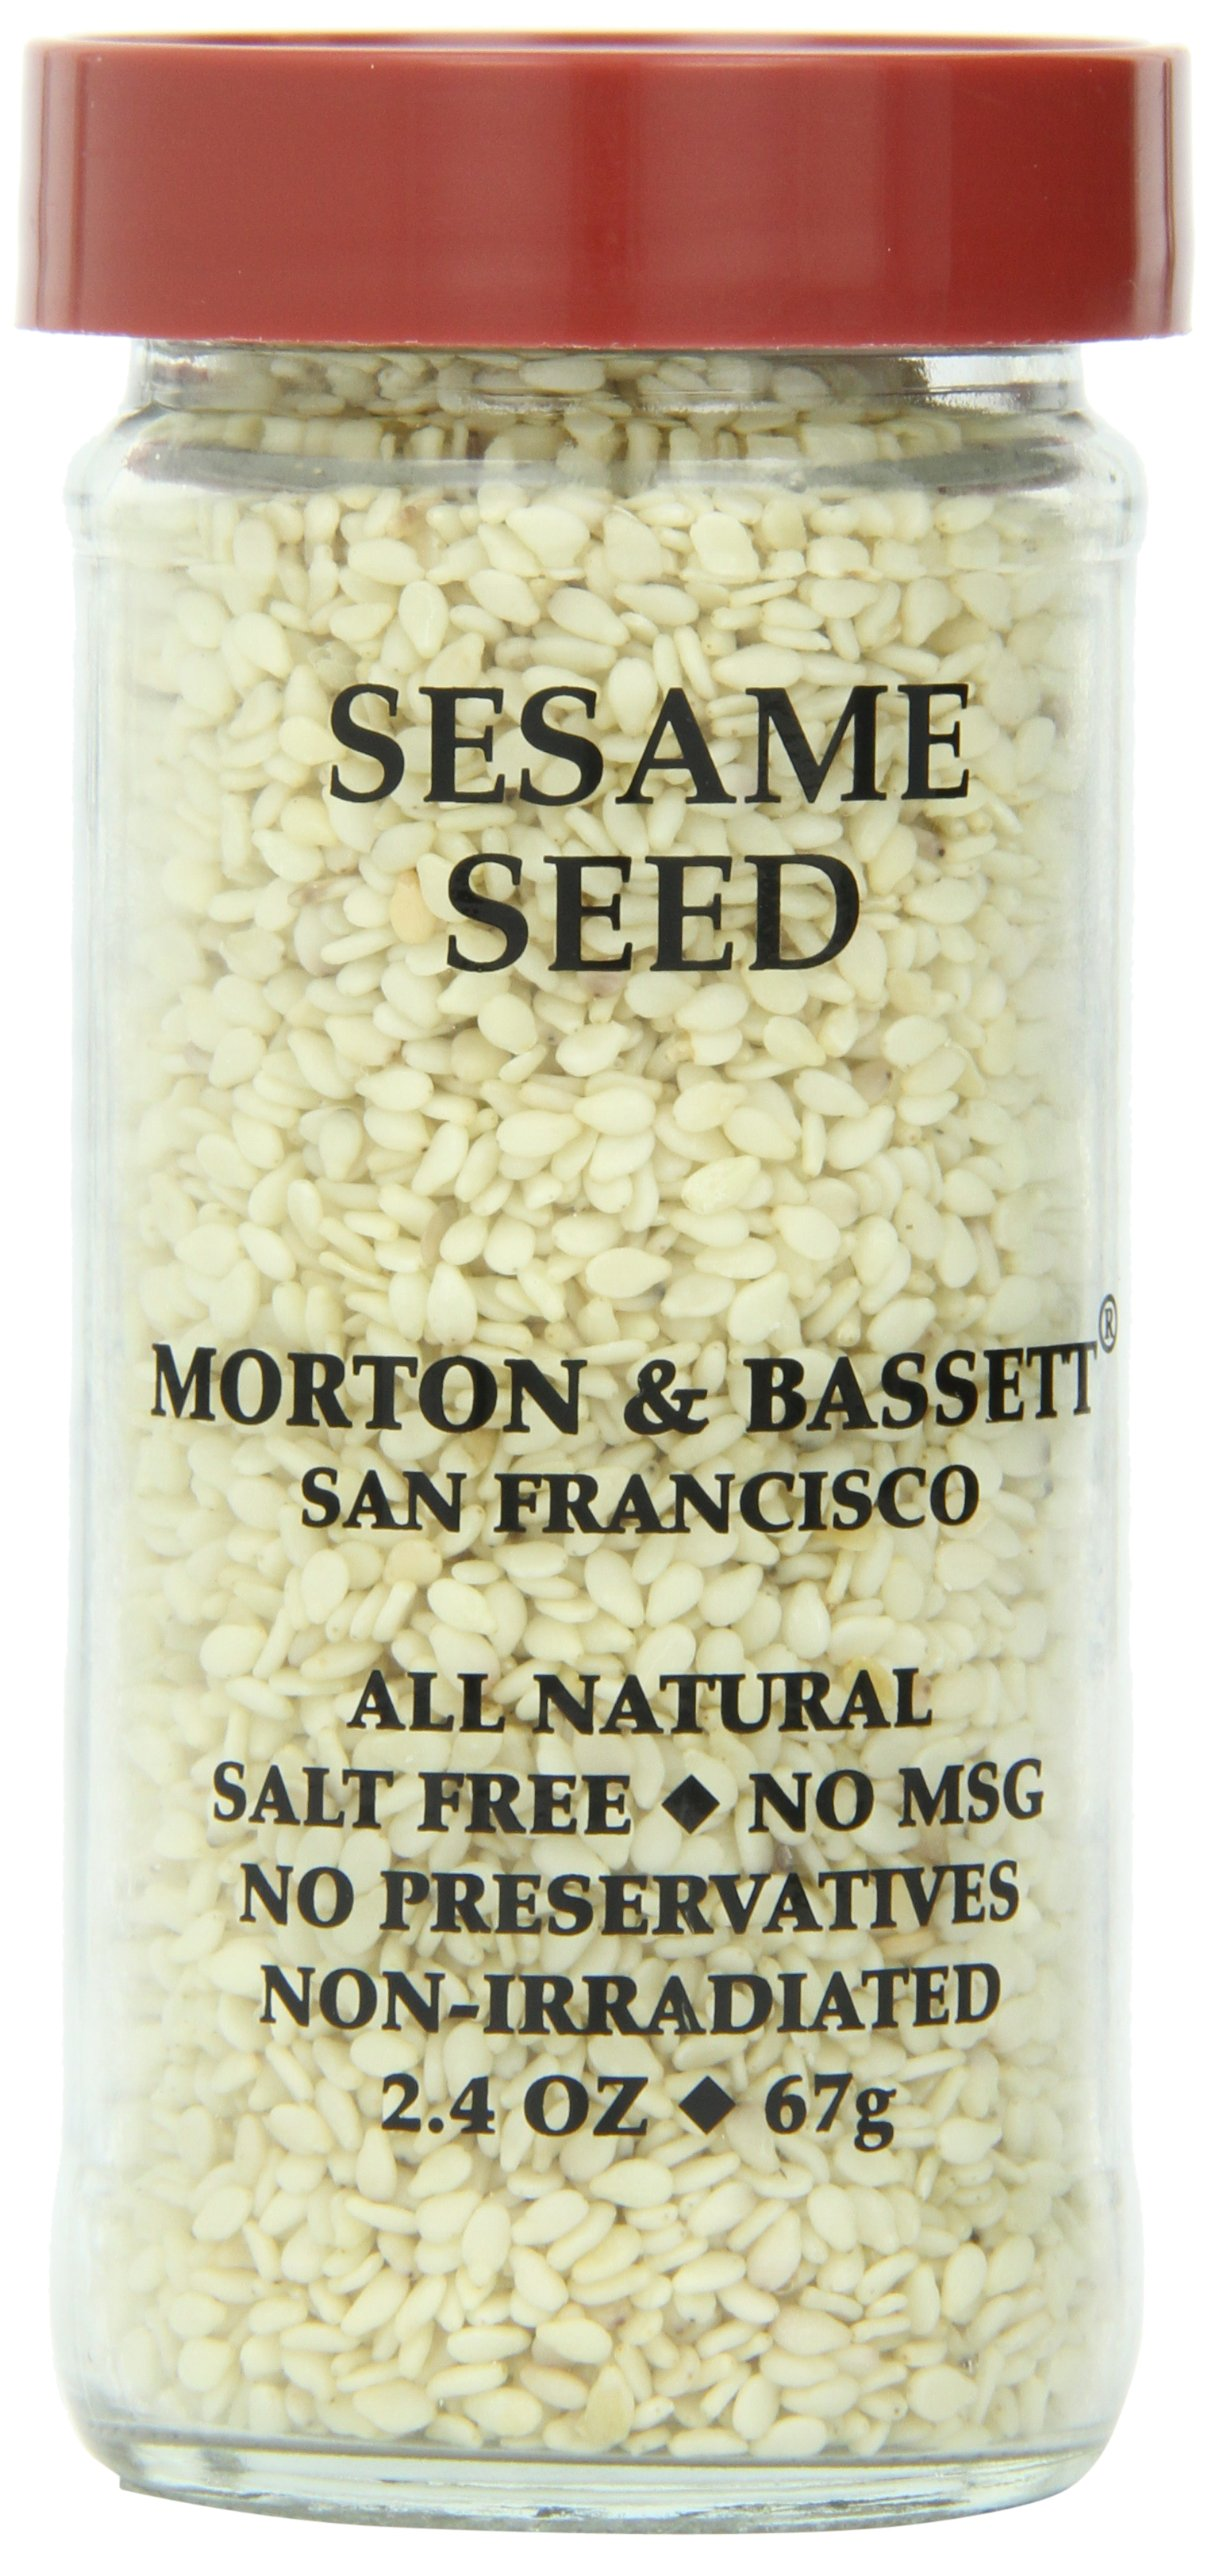 Morton & Basset Spices, Sesame Seed, 2.4 Ounce (Pack of 3)